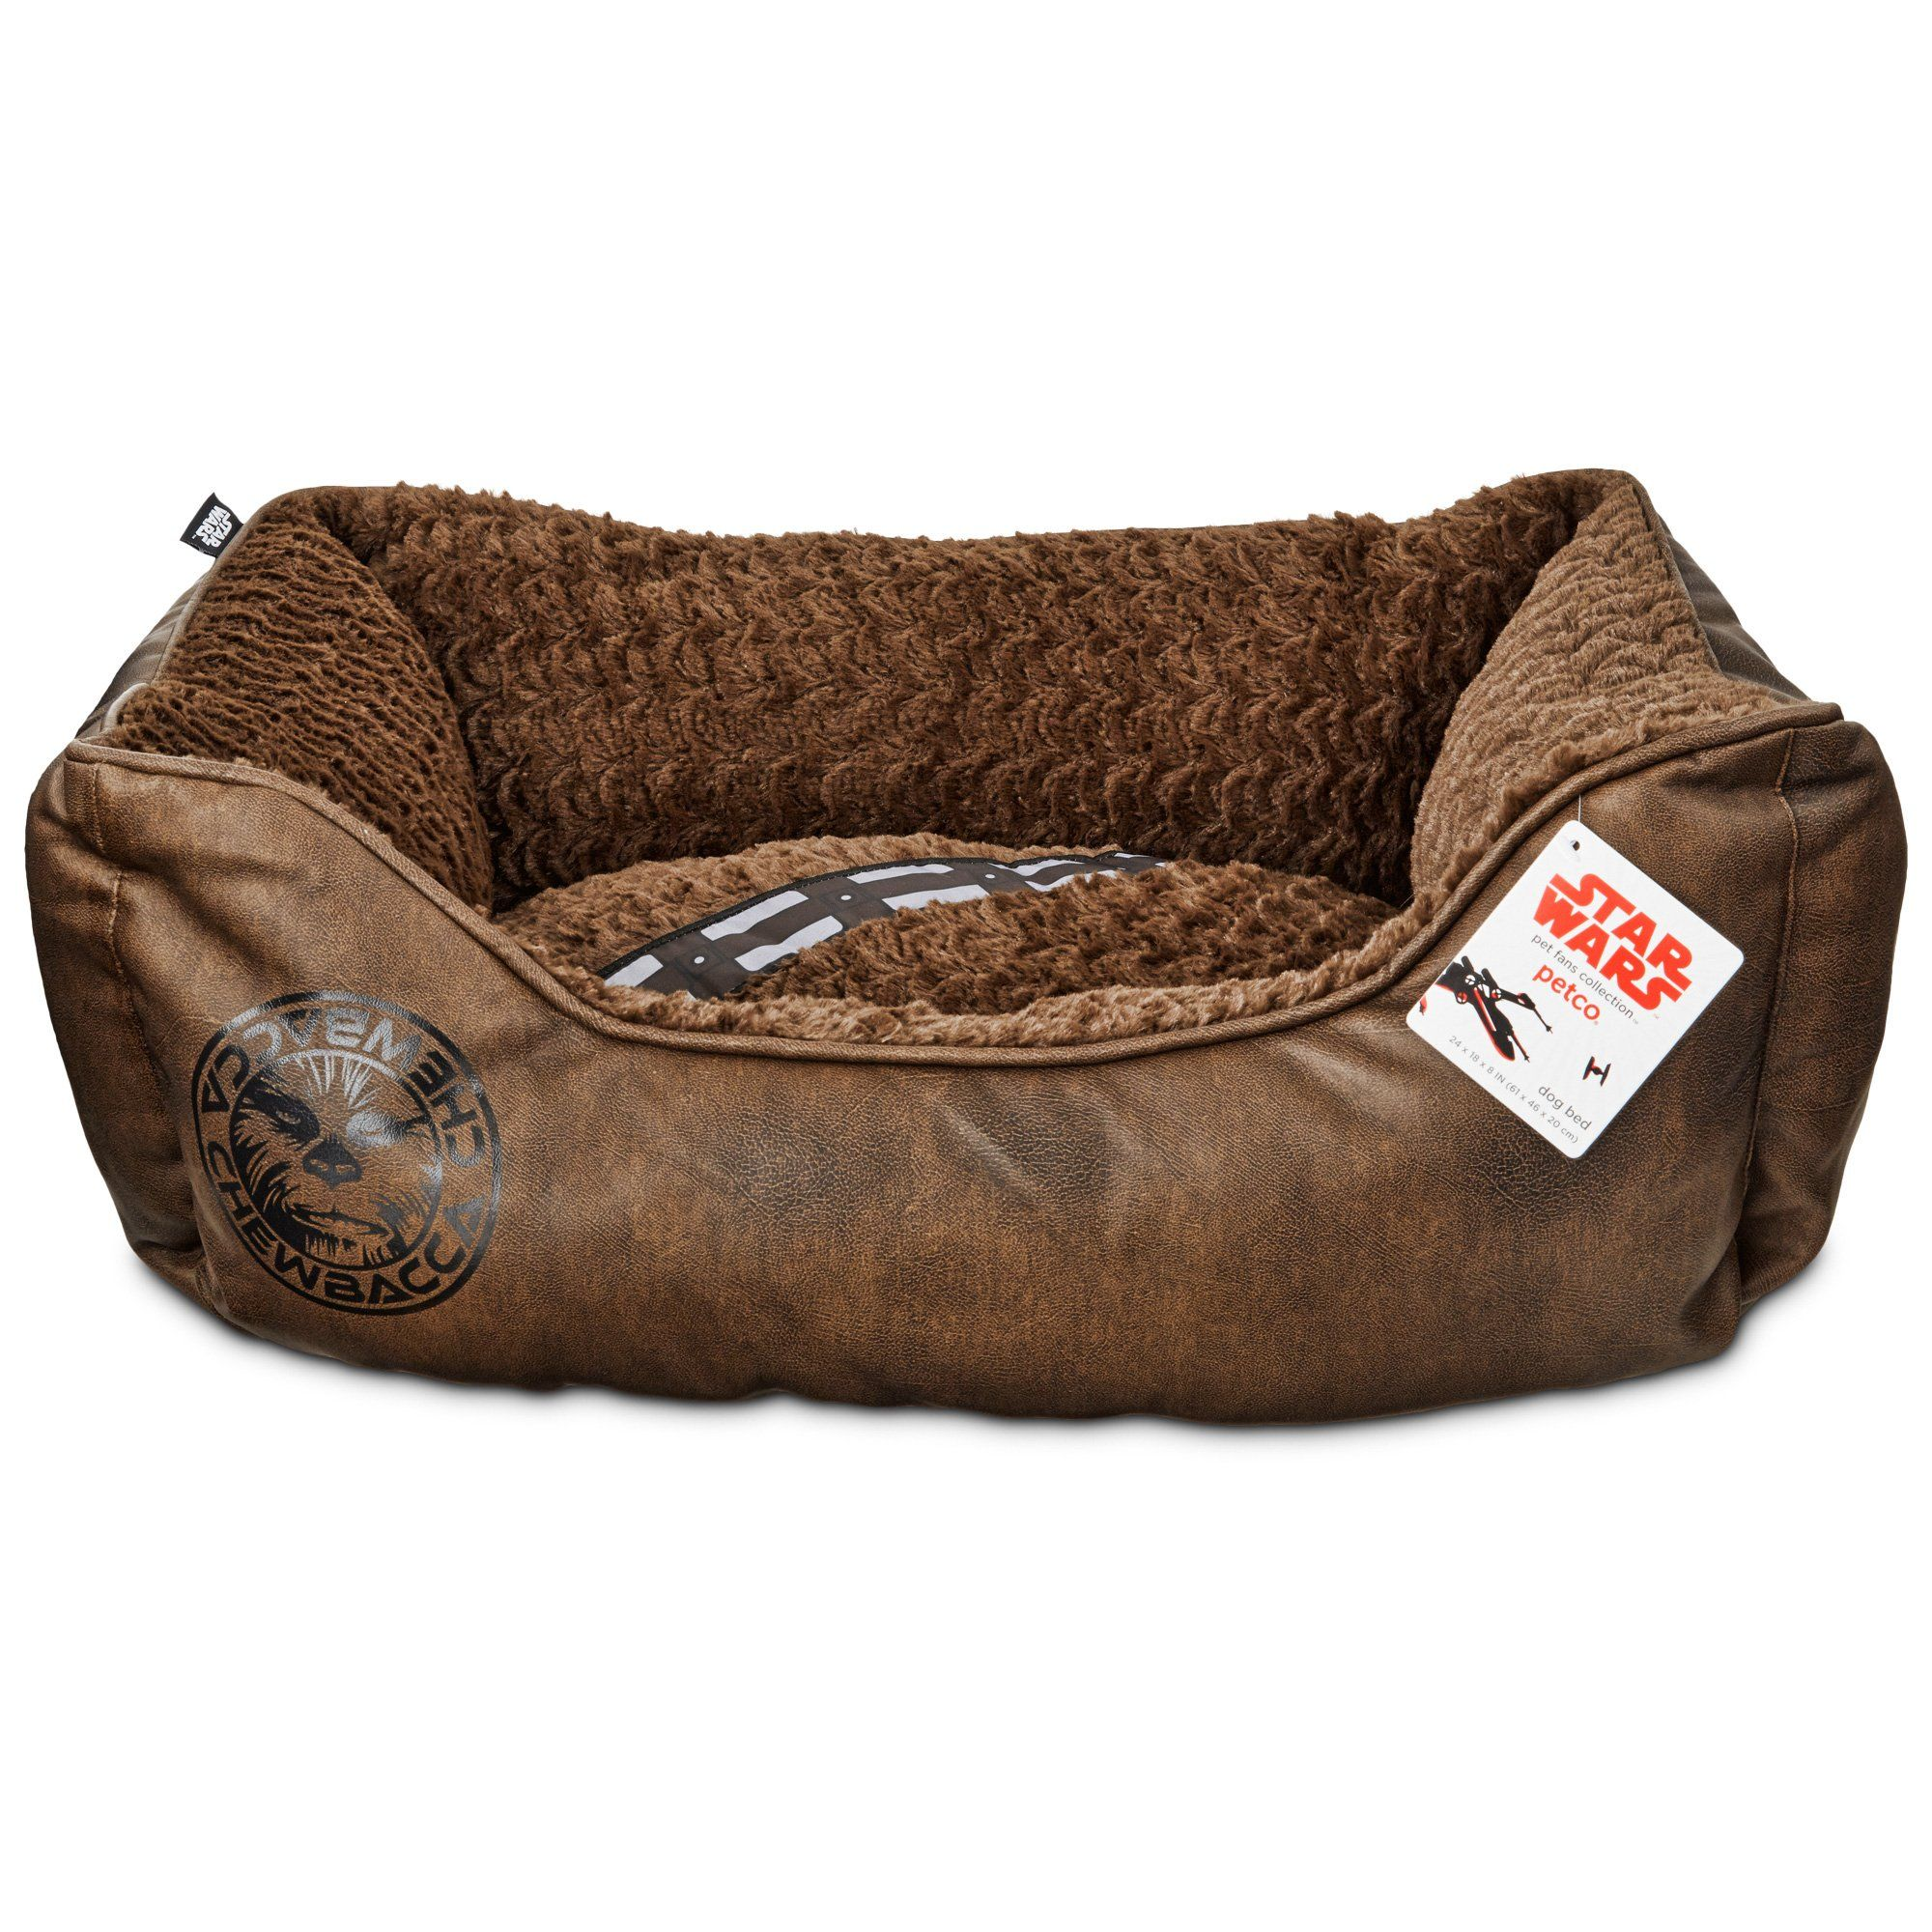 sophie beds dog allport for dogs woof zoom bed large